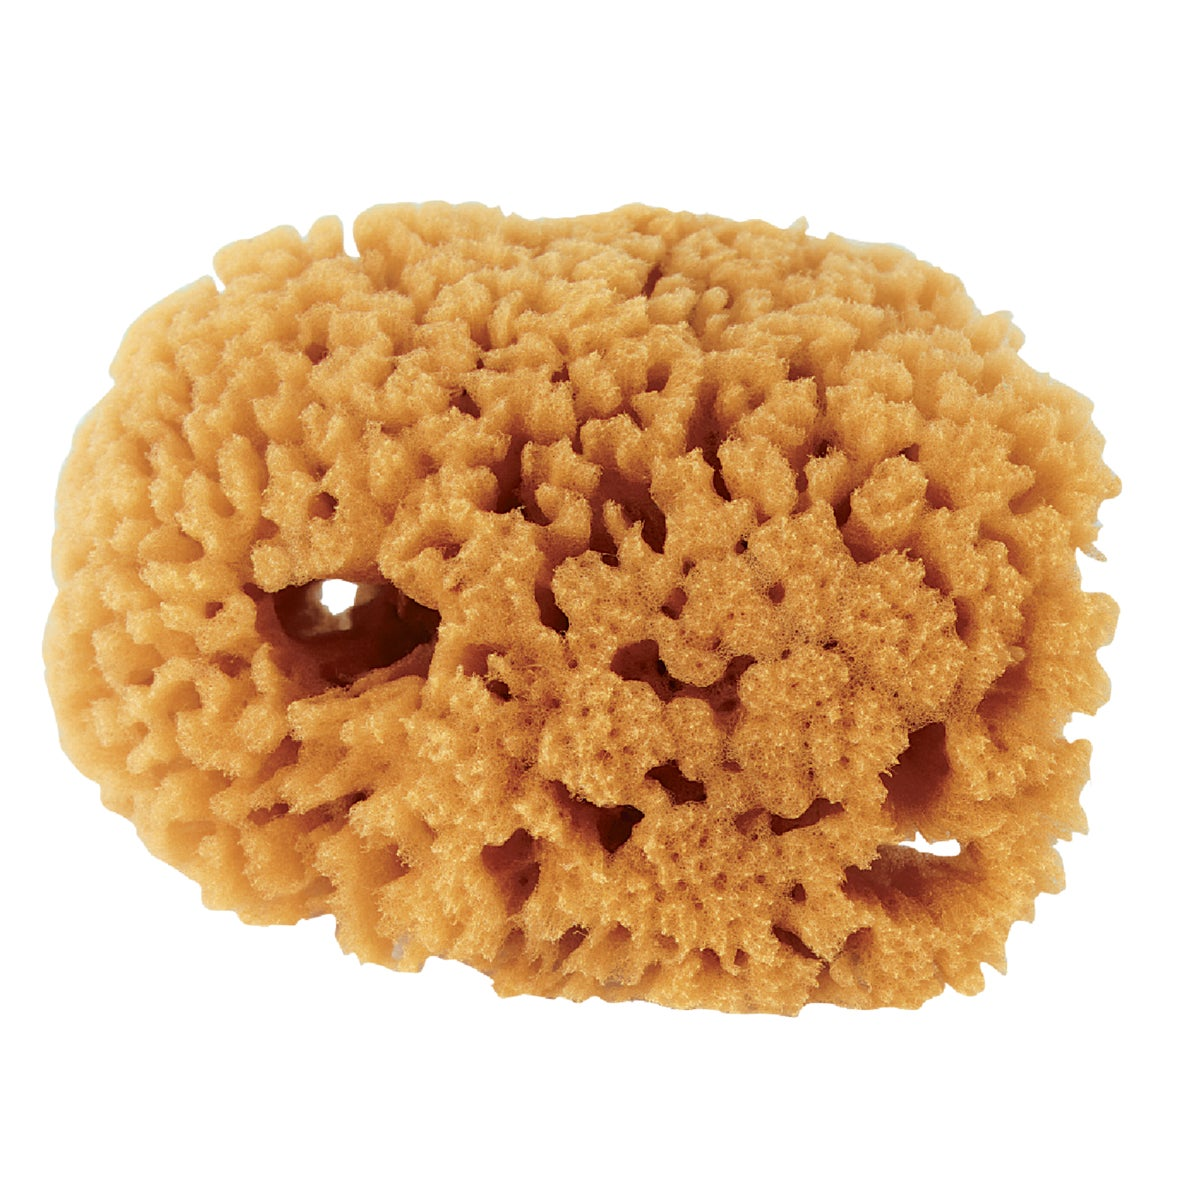 SMALL SEA SPONGE - 503192400 by Purdy Bestt Liebco